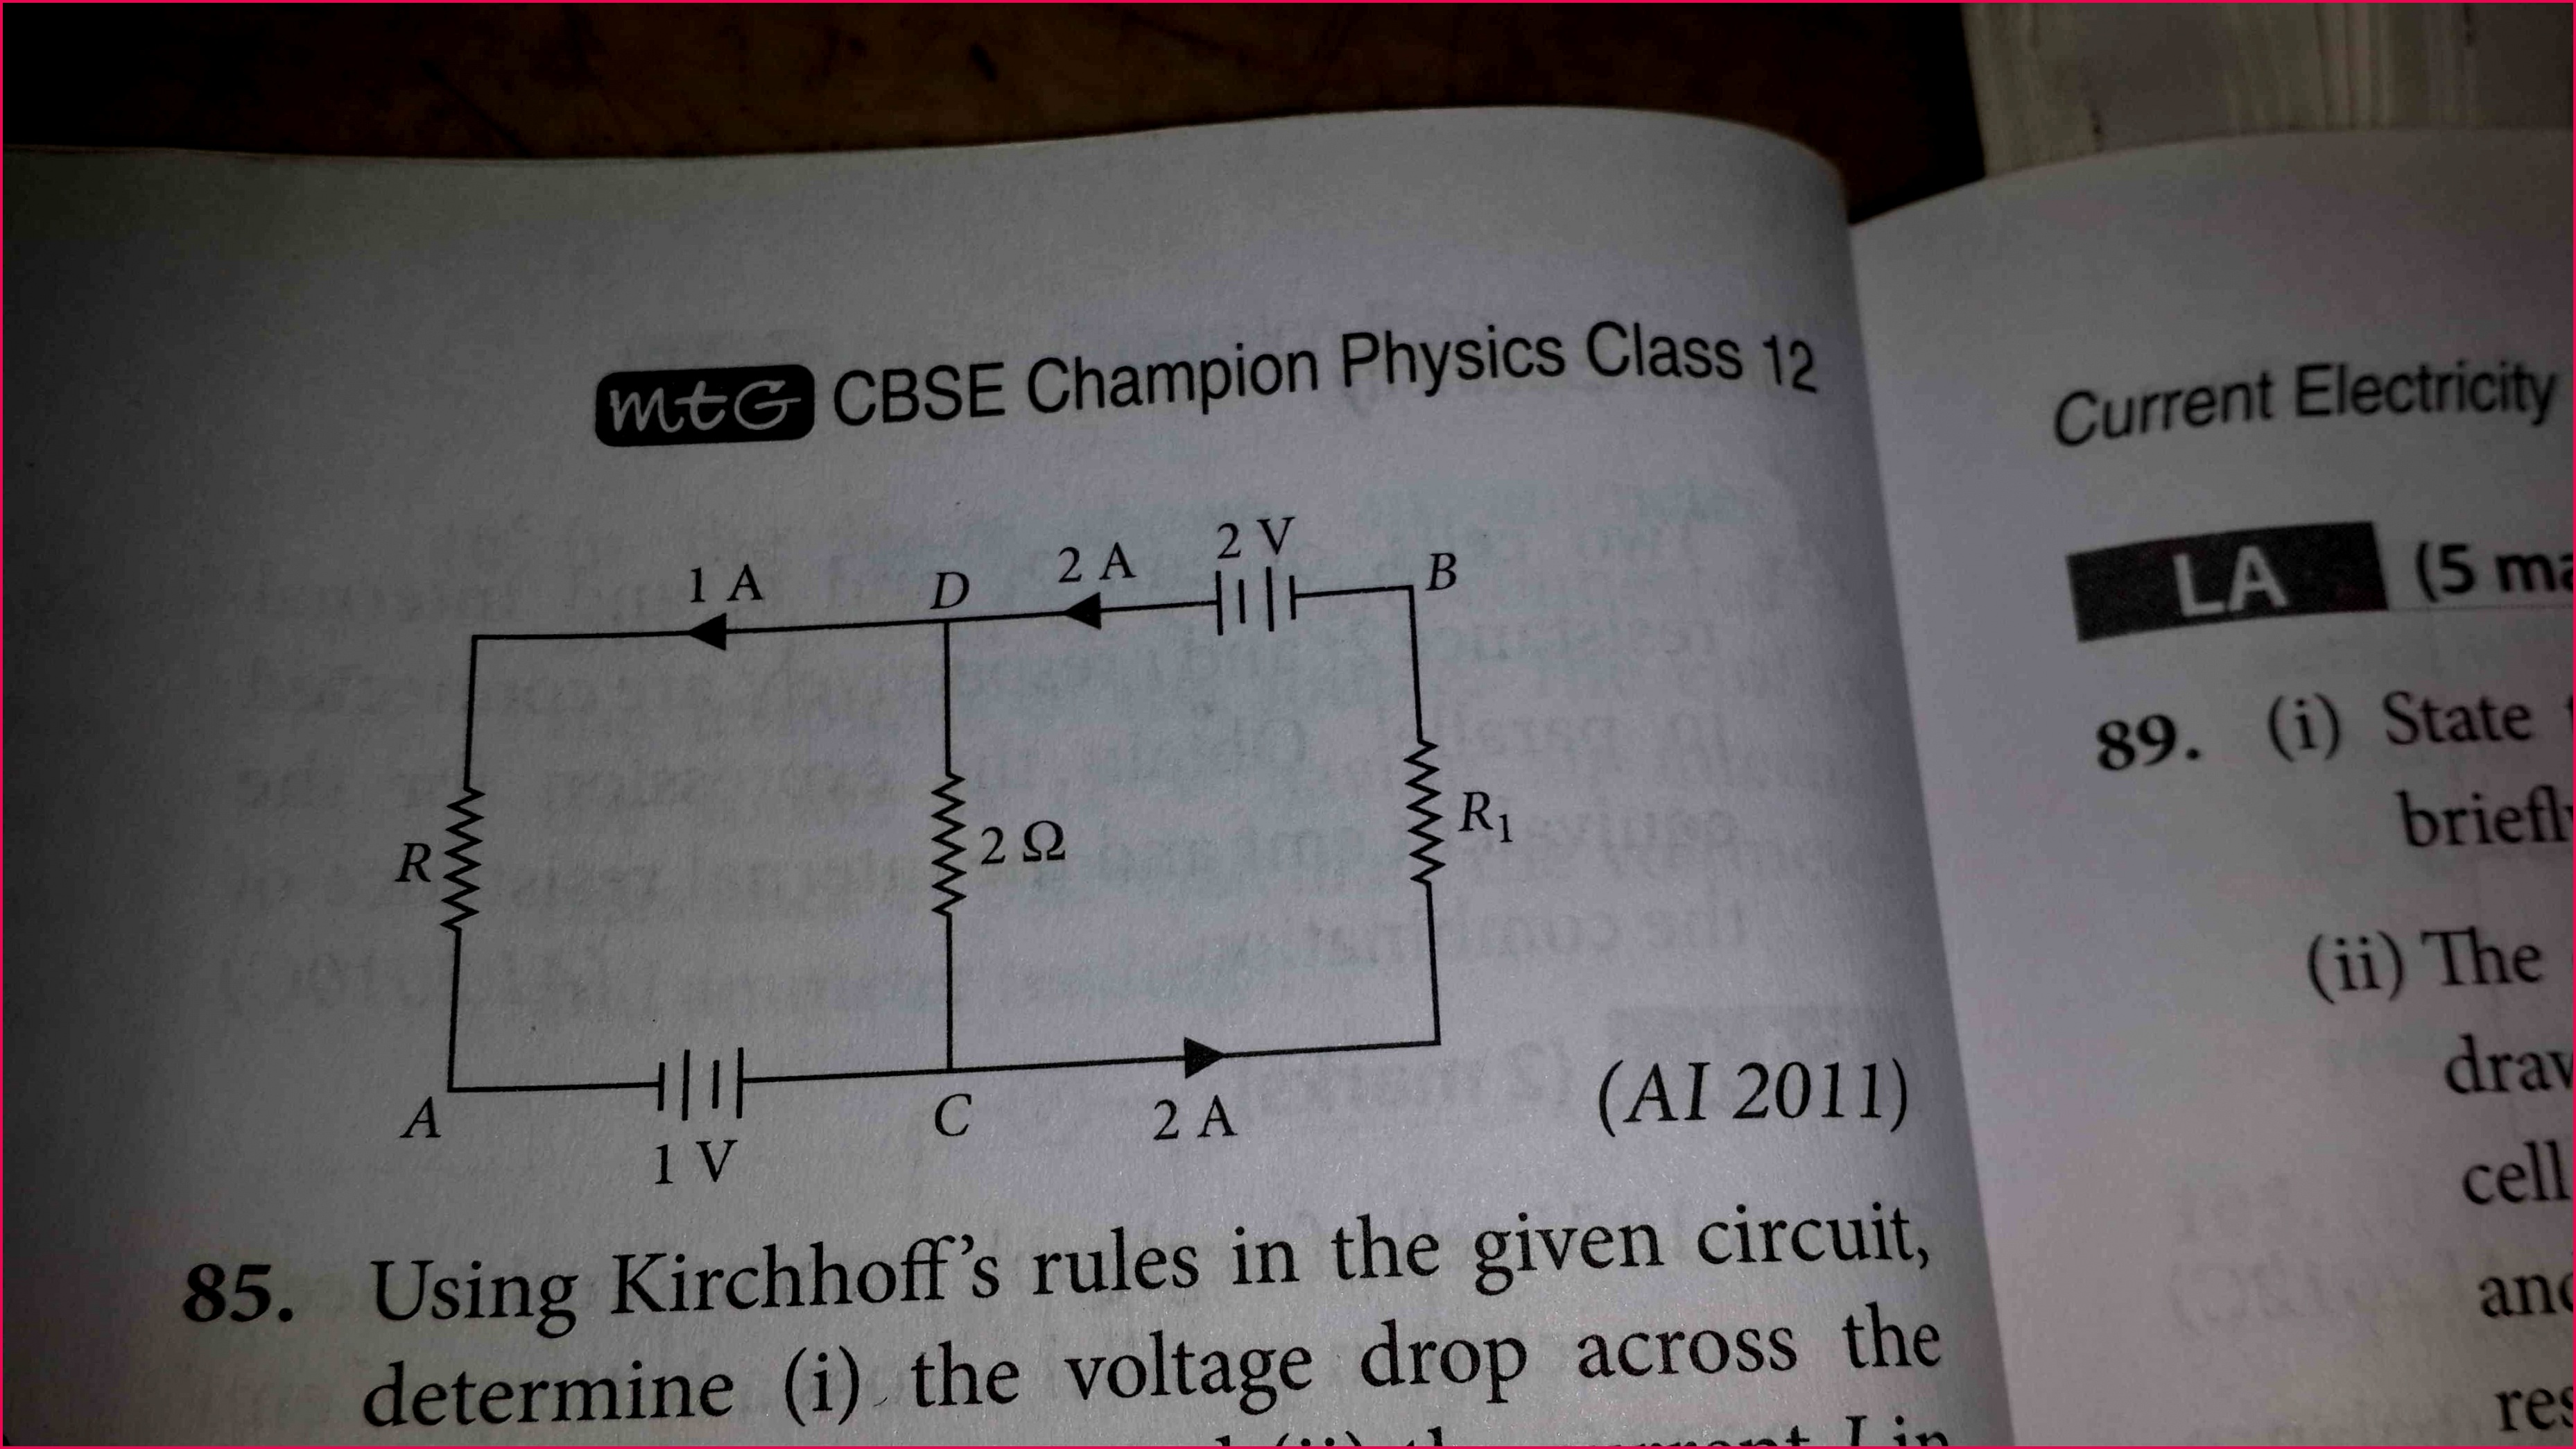 CBSE XII Science Physics Current Electricity In the given circuit assuming point A to be at zero potential use kirchhoff rule to determine the